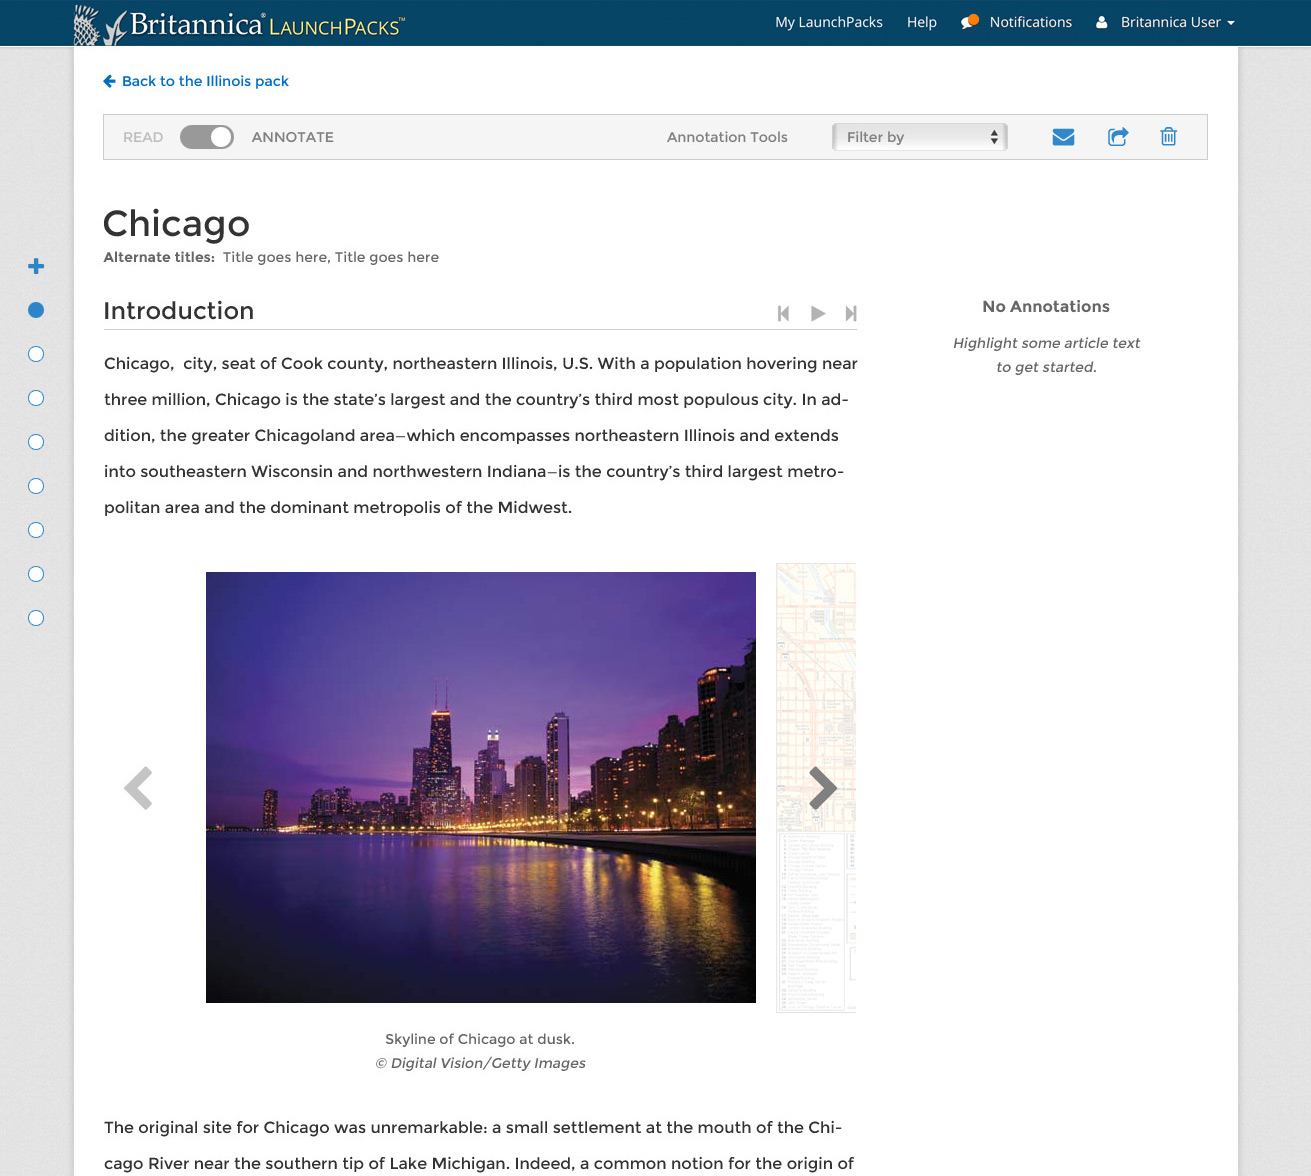 After I redesigned the articles pages, we were able to use the screen space in a much better way to accommodate annotations. Our users were delighted.